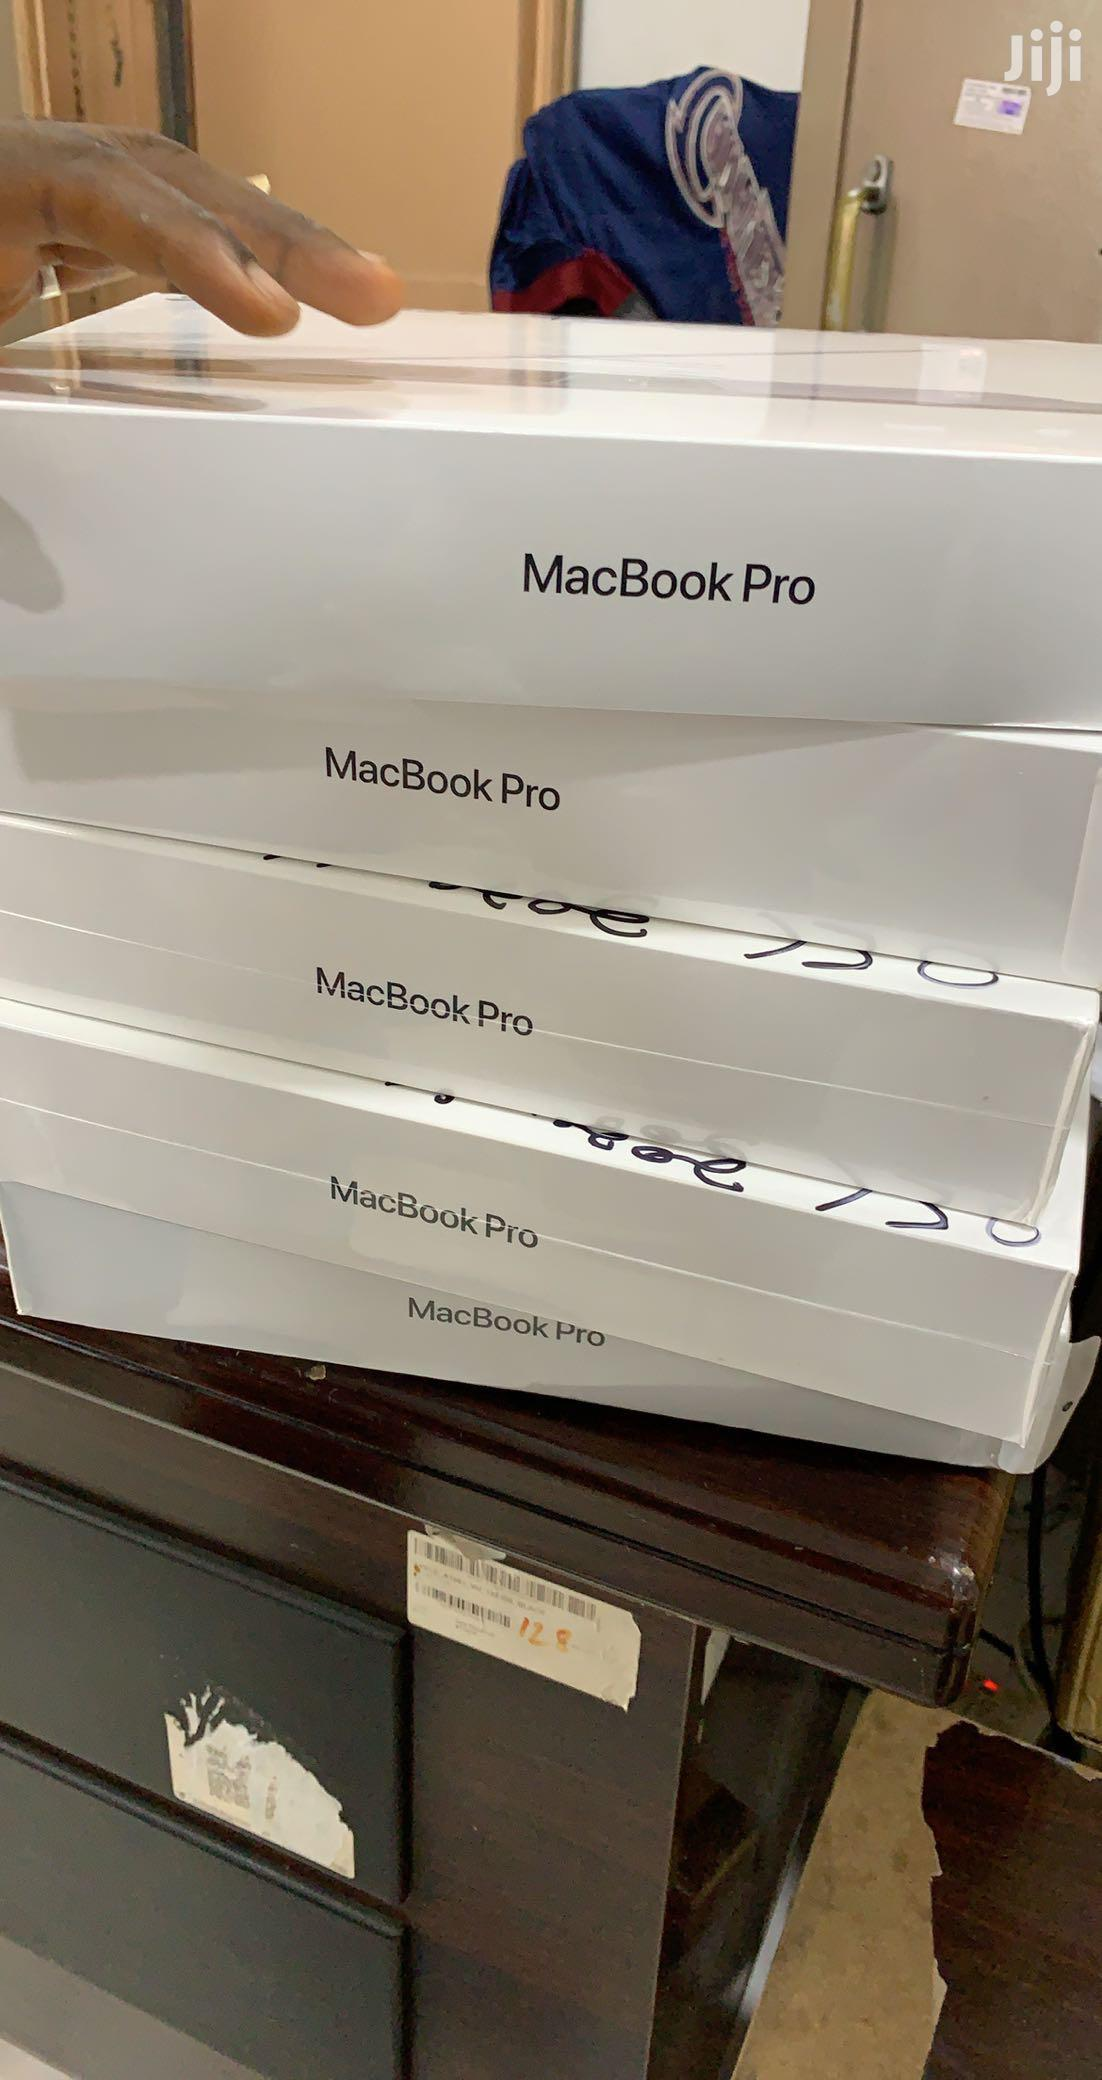 New Laptop Apple MacBook Pro 8GB Intel Core I5 SSD 256GB   Laptops & Computers for sale in Airport Residential Area, Greater Accra, Ghana